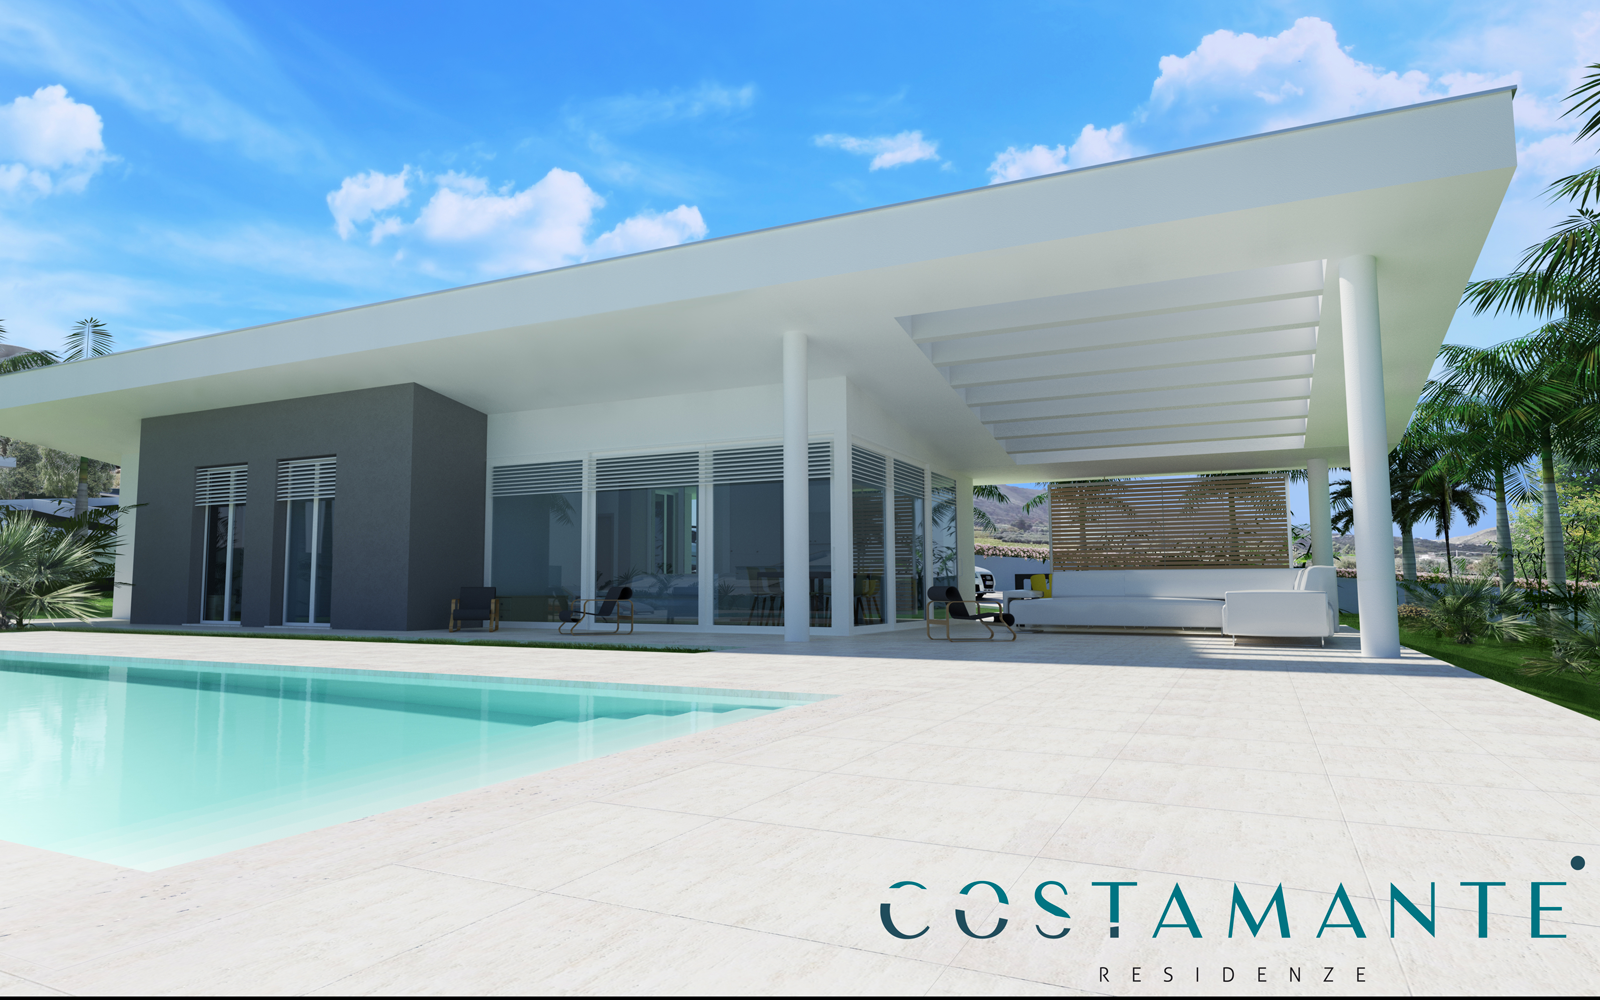 Costamante Residenze 1